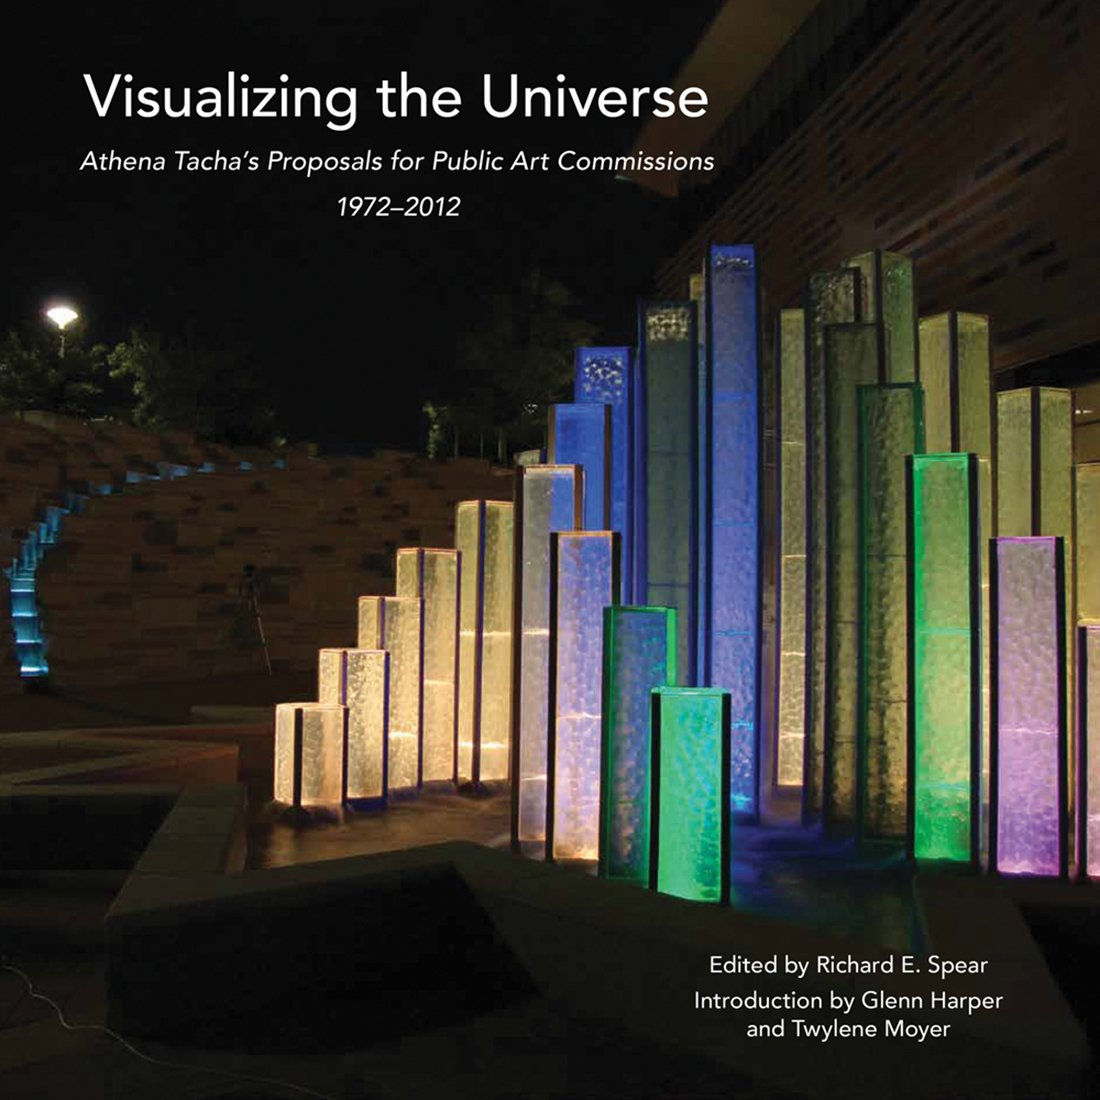 Visualizing the Universe: Athena Tacha's Proposals for Public Art Commissions 1972 - 2012